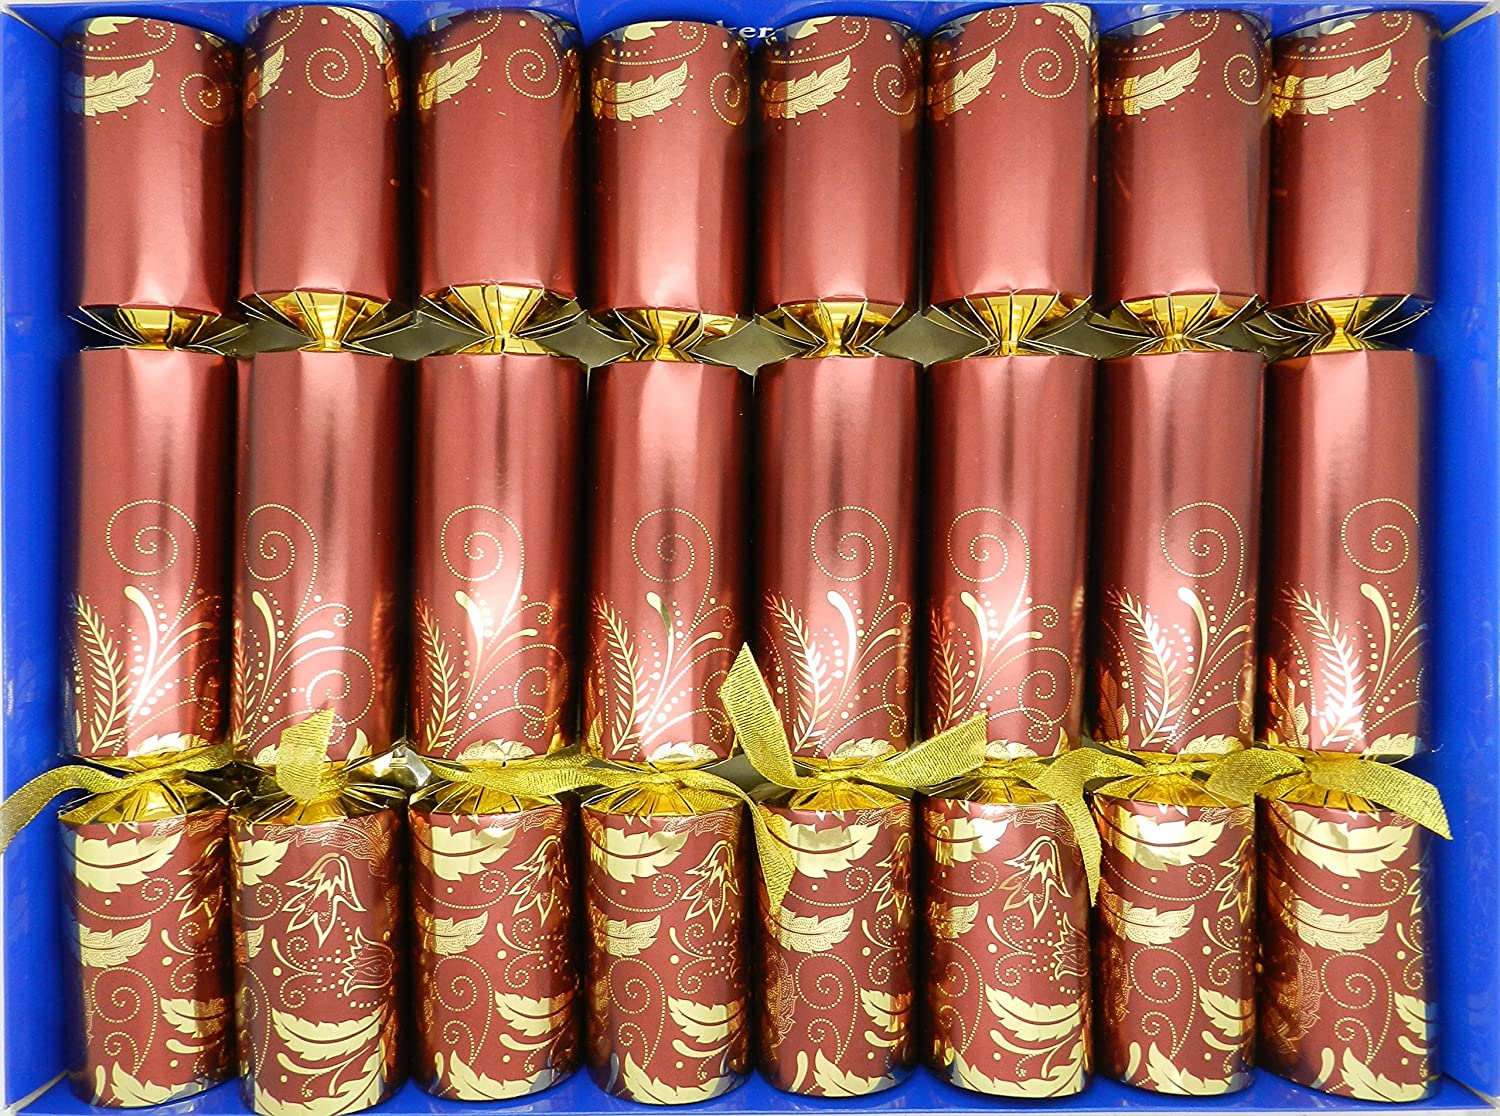 Crackers Fill Your Own Christmas Crackers - Claret with Gold Swirls and organza ribbon Crackers Ltd